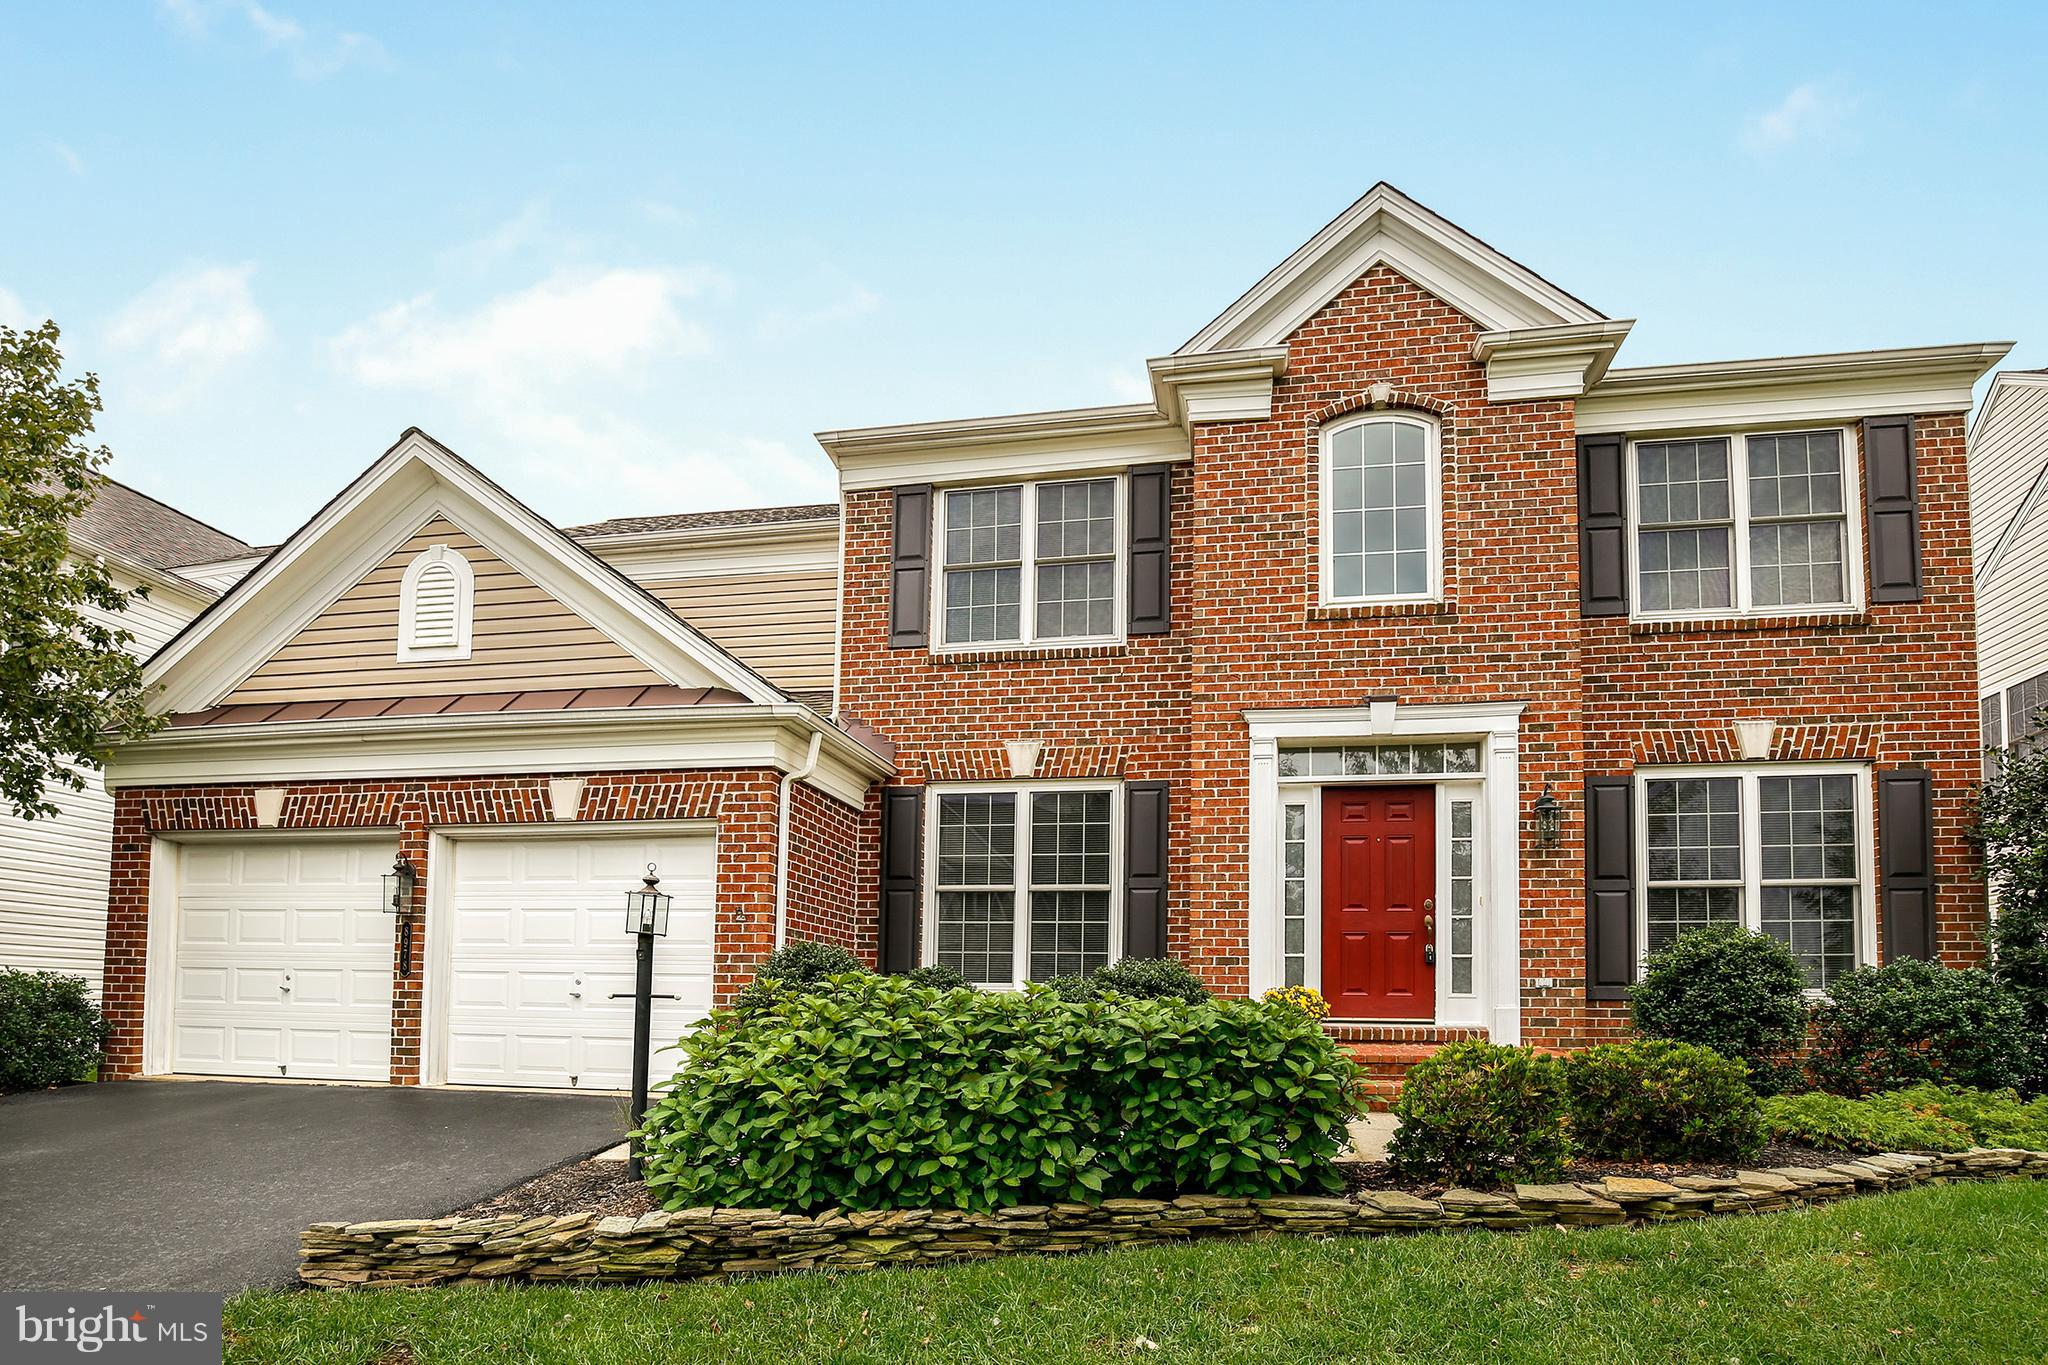 Gorgeous brick front colonial in Laurel Hill! The formal LR & DR on the main FLR leads to the open KIT & BFAST area. LR just off the KIT FEATs a lovely FPLC & sliding doors that leads to the BKYD. Upstairs are 3 BDs & a large MBA complete w/ 2 walk-in closet & an ensuite BA w/ a standing shower & soaking tub. Highlights include a 2 car GAR, HDWD FLRs throughout, & close to shops &restaurants.